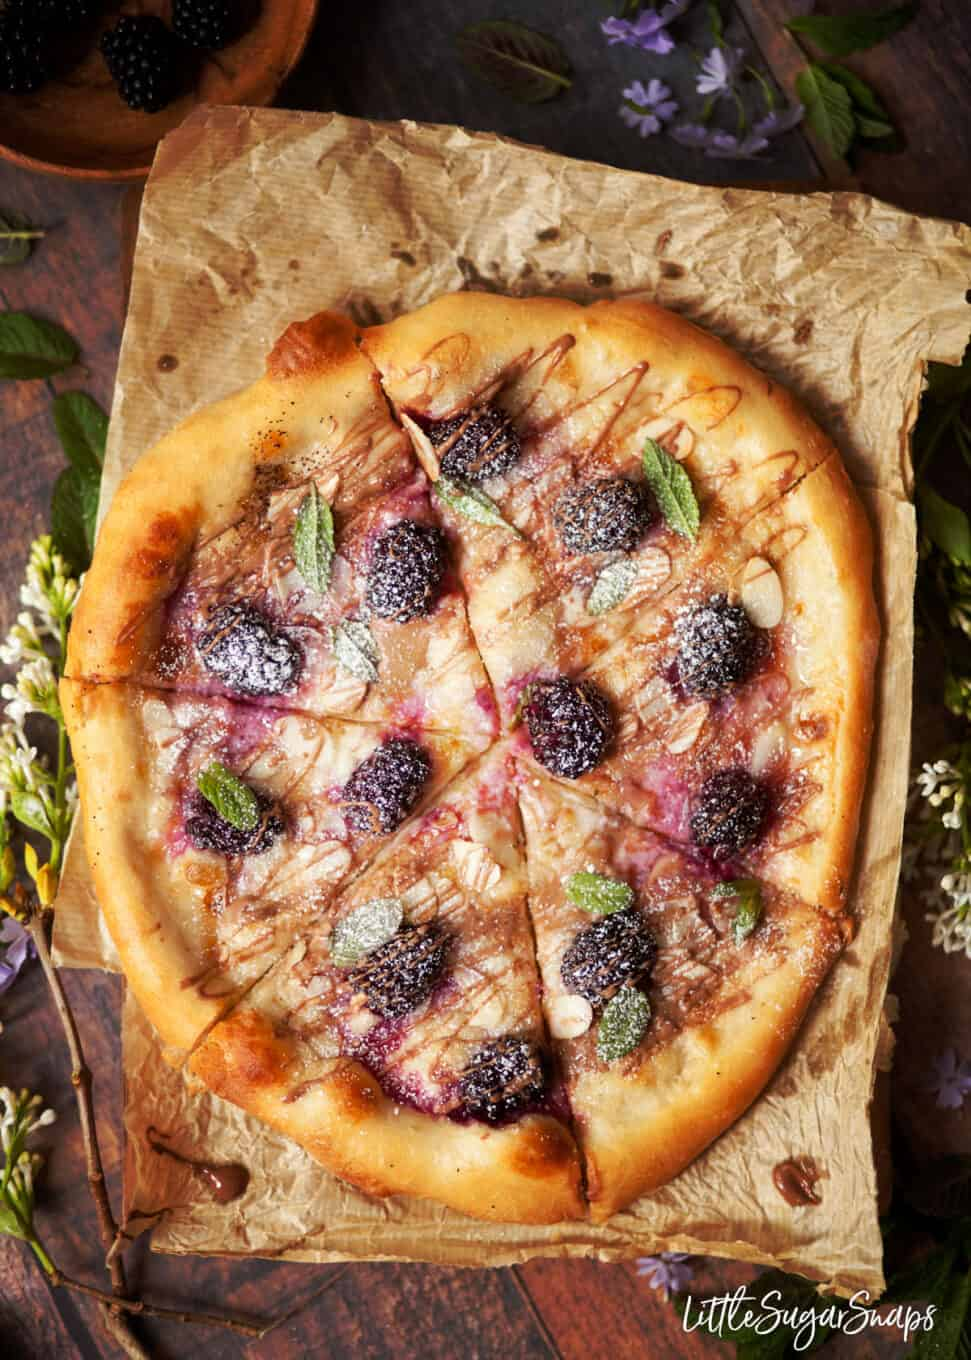 Sweet pizza with mascarpone and roast berries sliced into triangles.